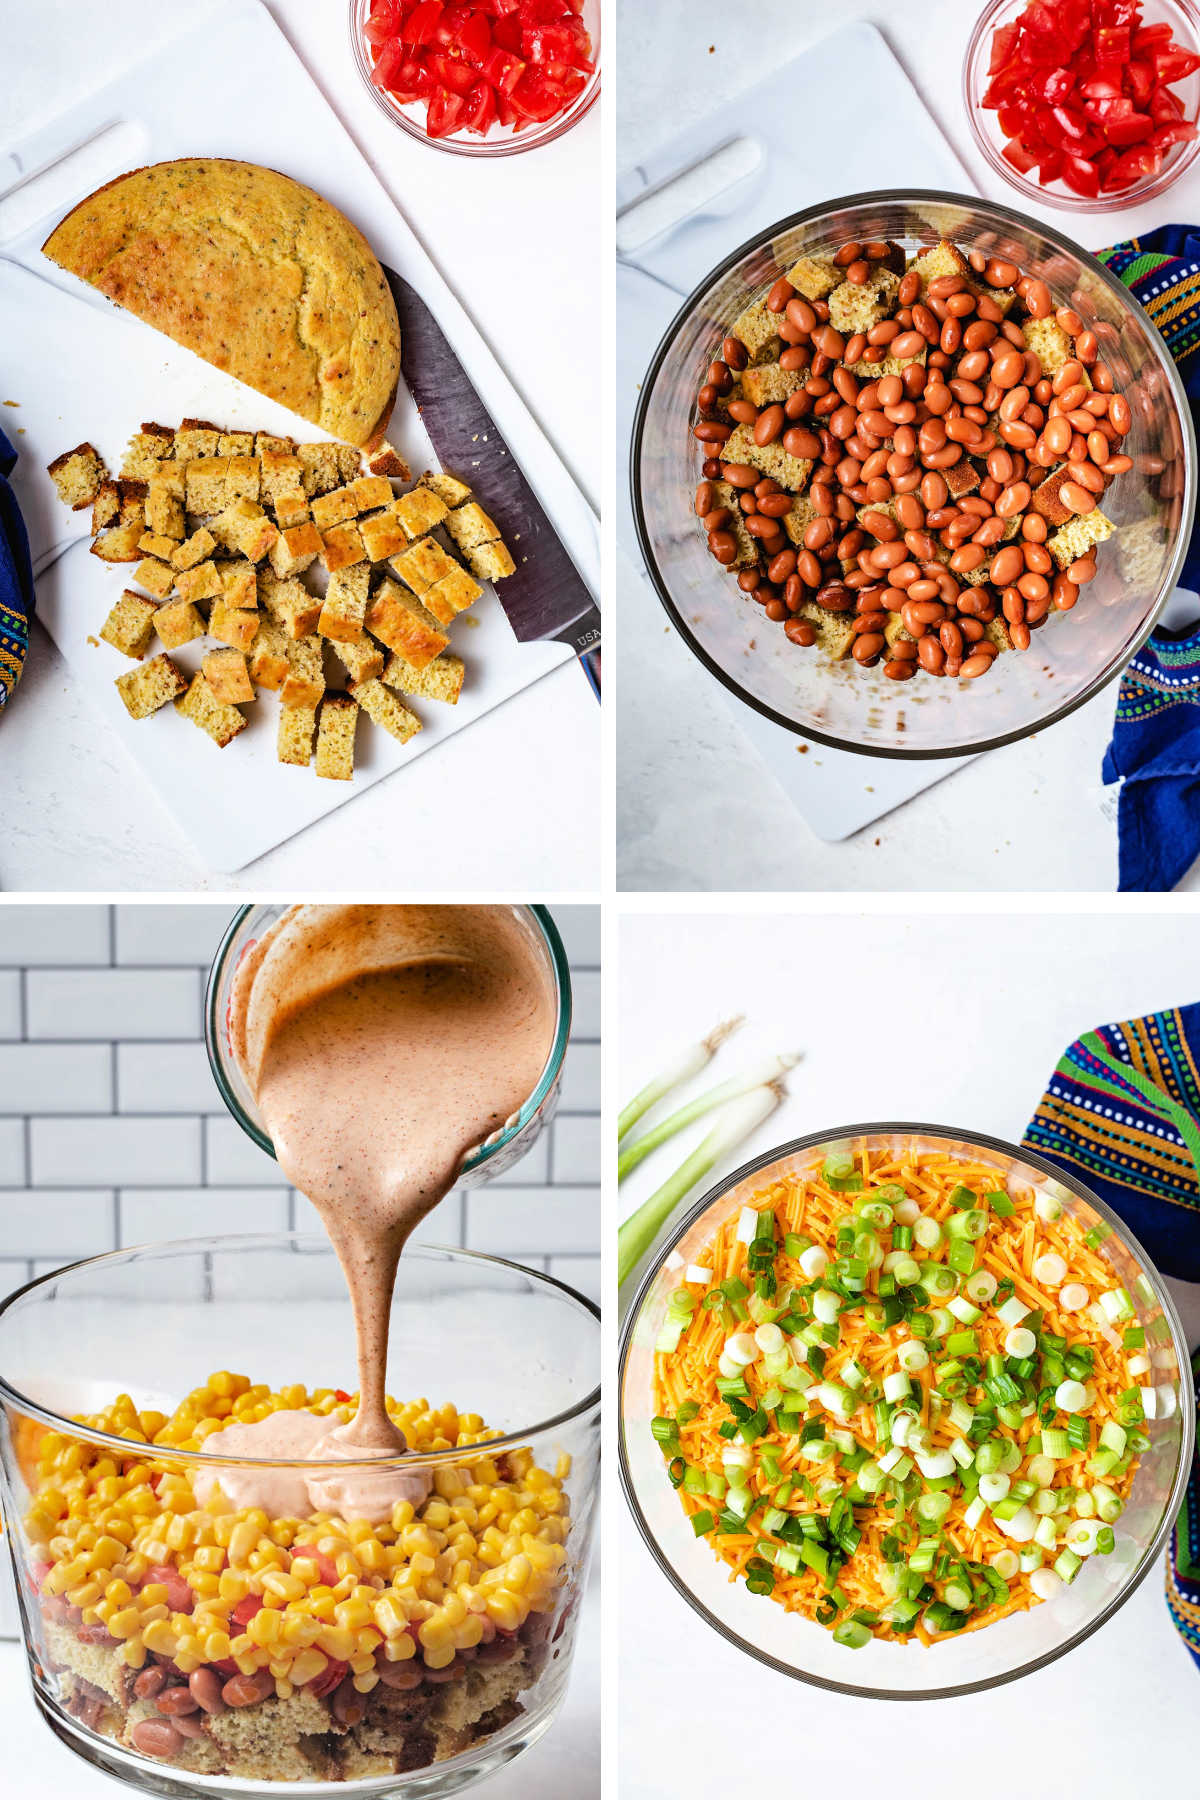 process steps for assembling cornbread salad: cube or crumble prepared cornbread; layer cornbread and pinto beans in dish; add tomatoes, corn, and ranch dressing; top with cheddar cheese and sliced green onions.